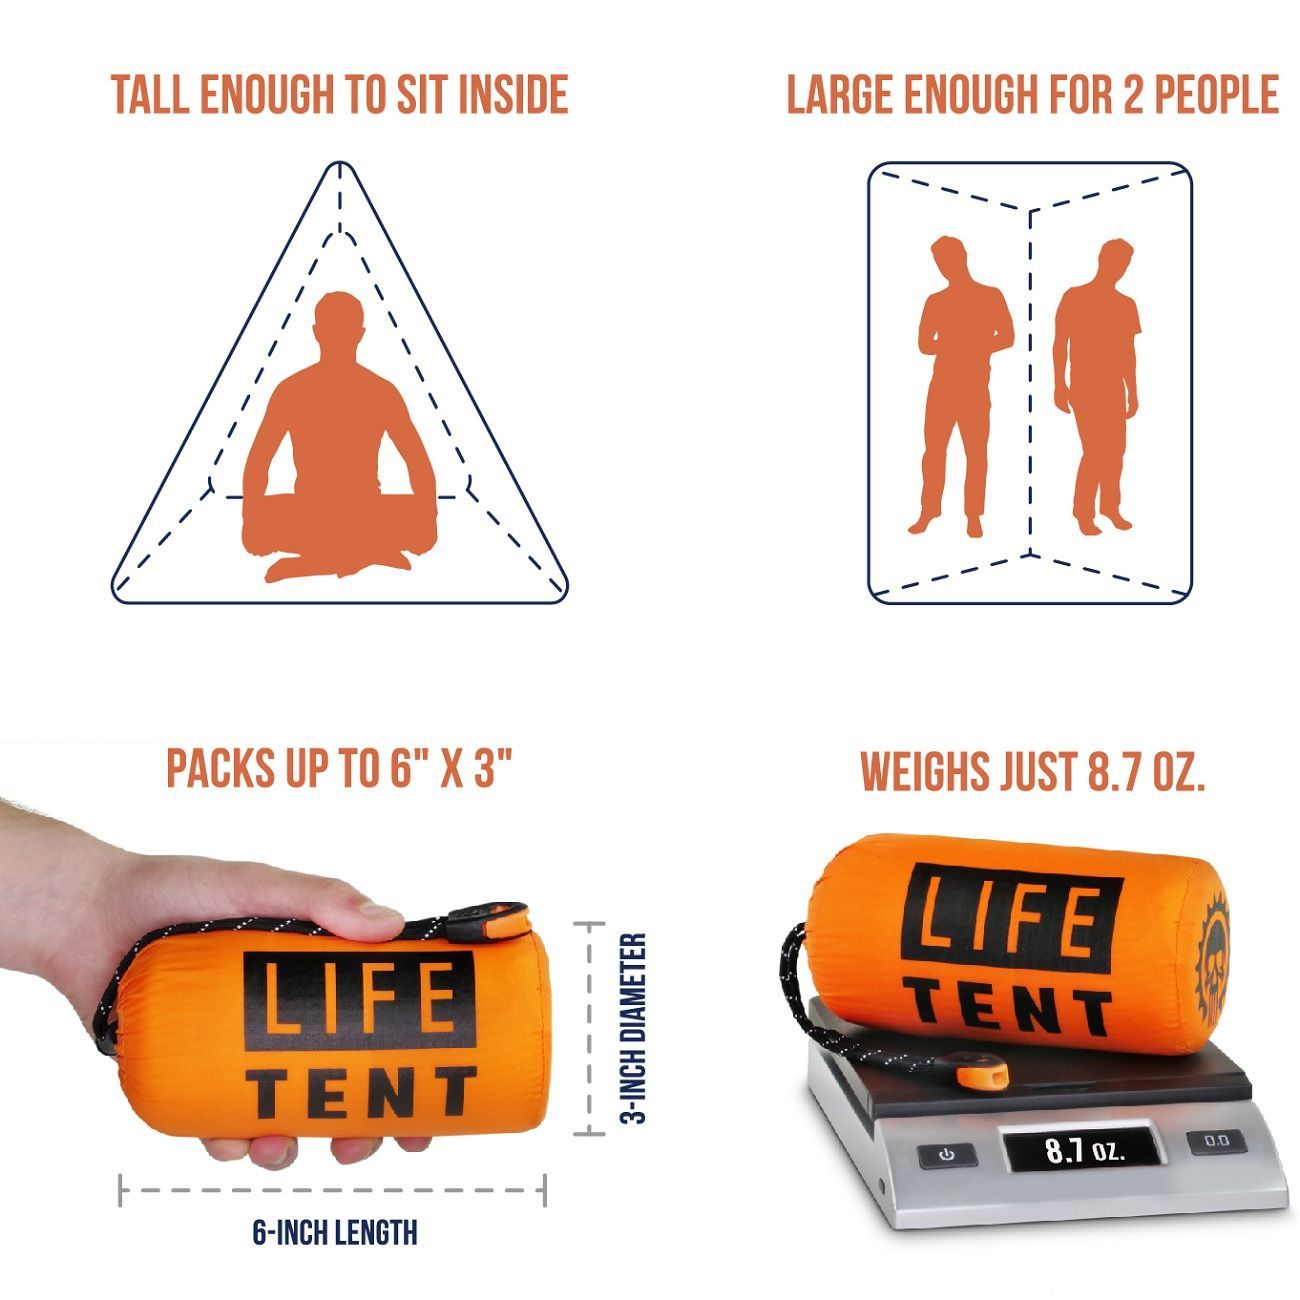 LIFE TENT SURVIVAL SHELTER